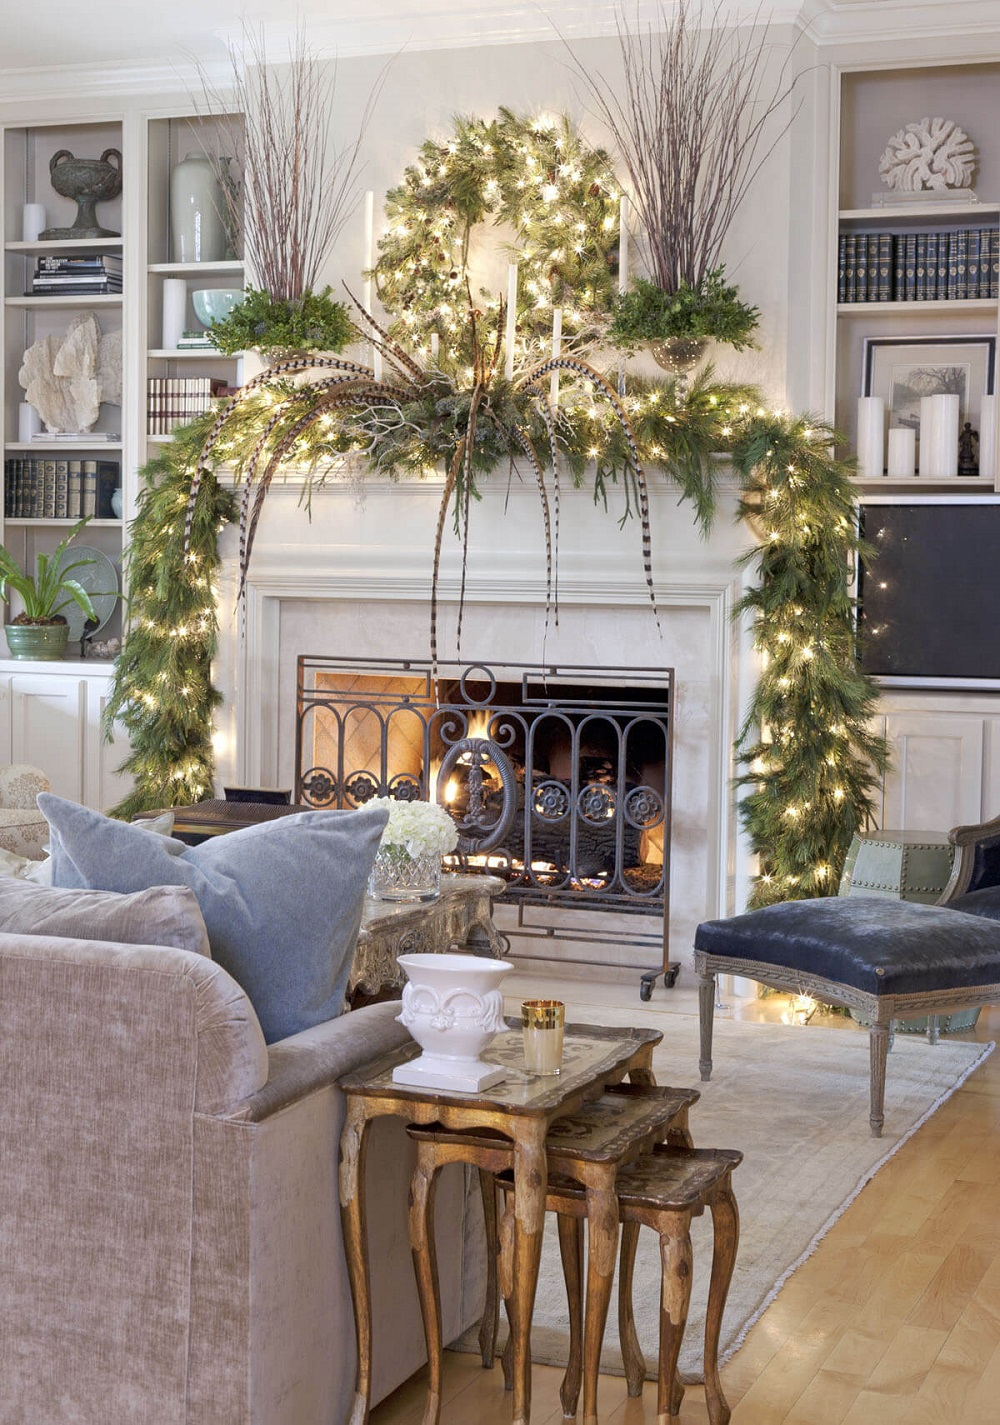 t4-6 Christmas decorations in the living room that you have to try during the holiday season